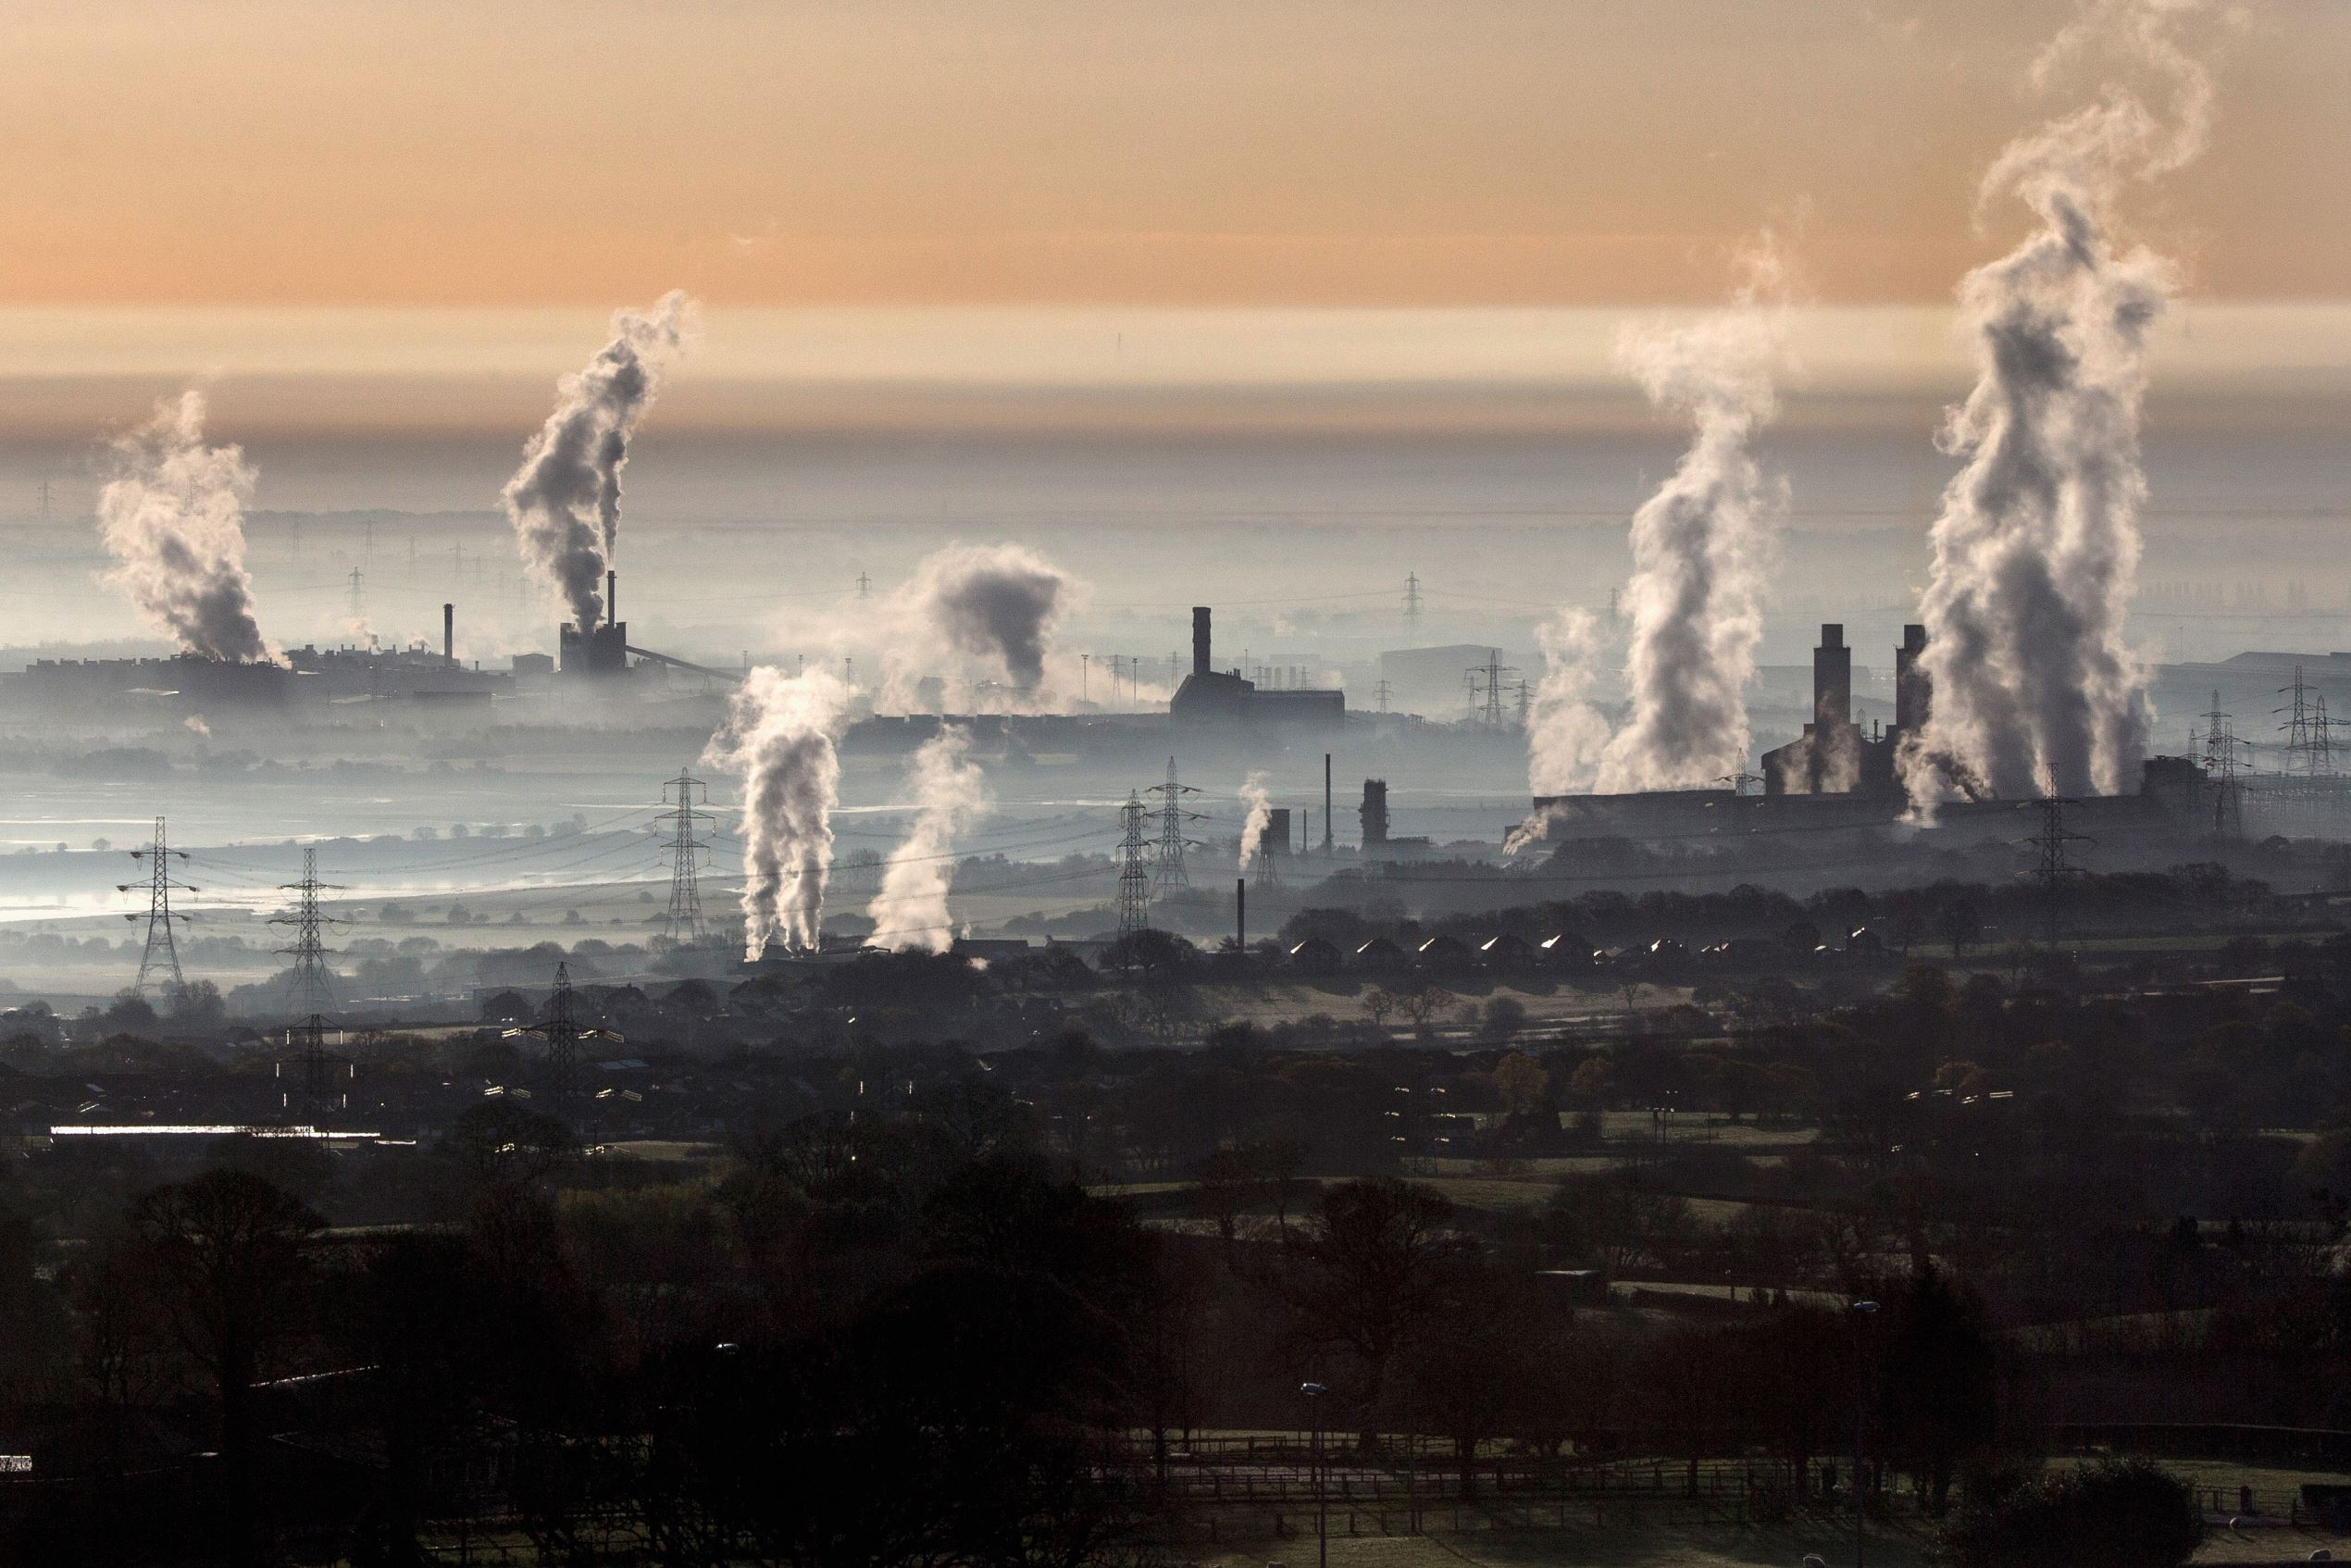 Слайд 35 из 86: FLINT, WALES - APRIL 13:  The industrial landscape across the Dee Estuary at sunrise as steam rises from Deeside power station, Shotton Steelworks and other heavy industrial plants on April 13, 2016 in Flint, Wales. The British Steel industry has been pl